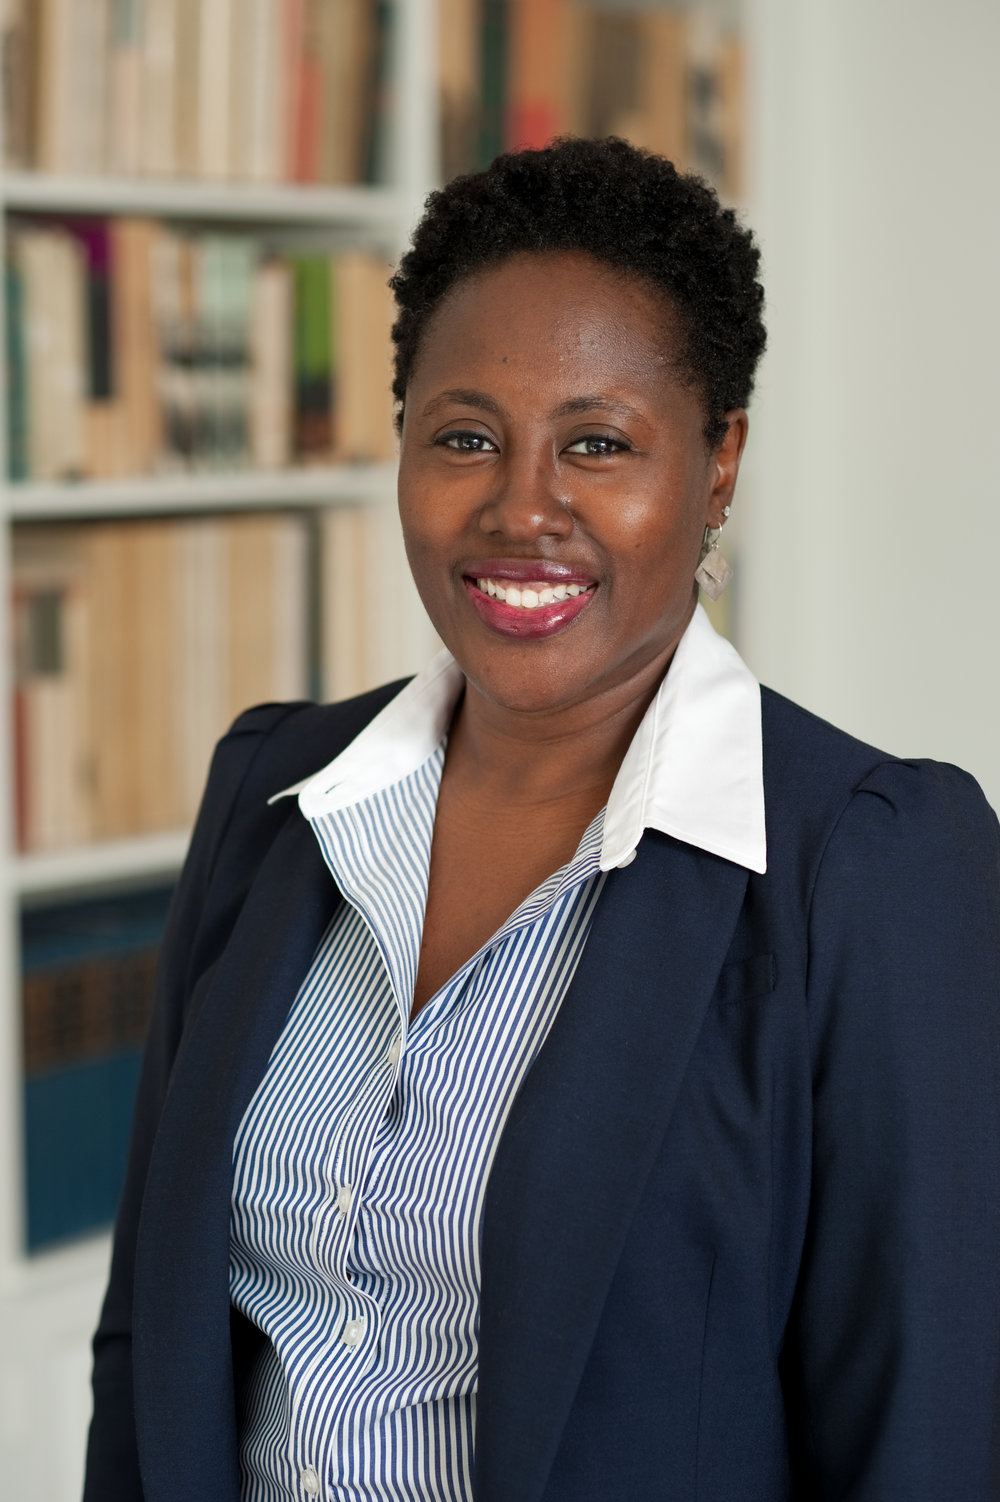 Makeba Morgan Hill, EdD Makeba Morgan Hill serves as deputy to the president and chief planner for The Andrew W. Mellon Foundation.  In this role, Ms. Hill oversees the Foundation's multiple planning efforts. Makeba worked for more than a decade in strategic planning roles at Emory Healthcare and Emory University.  Her academic background includes strategic planning and marketing, and higher education management.